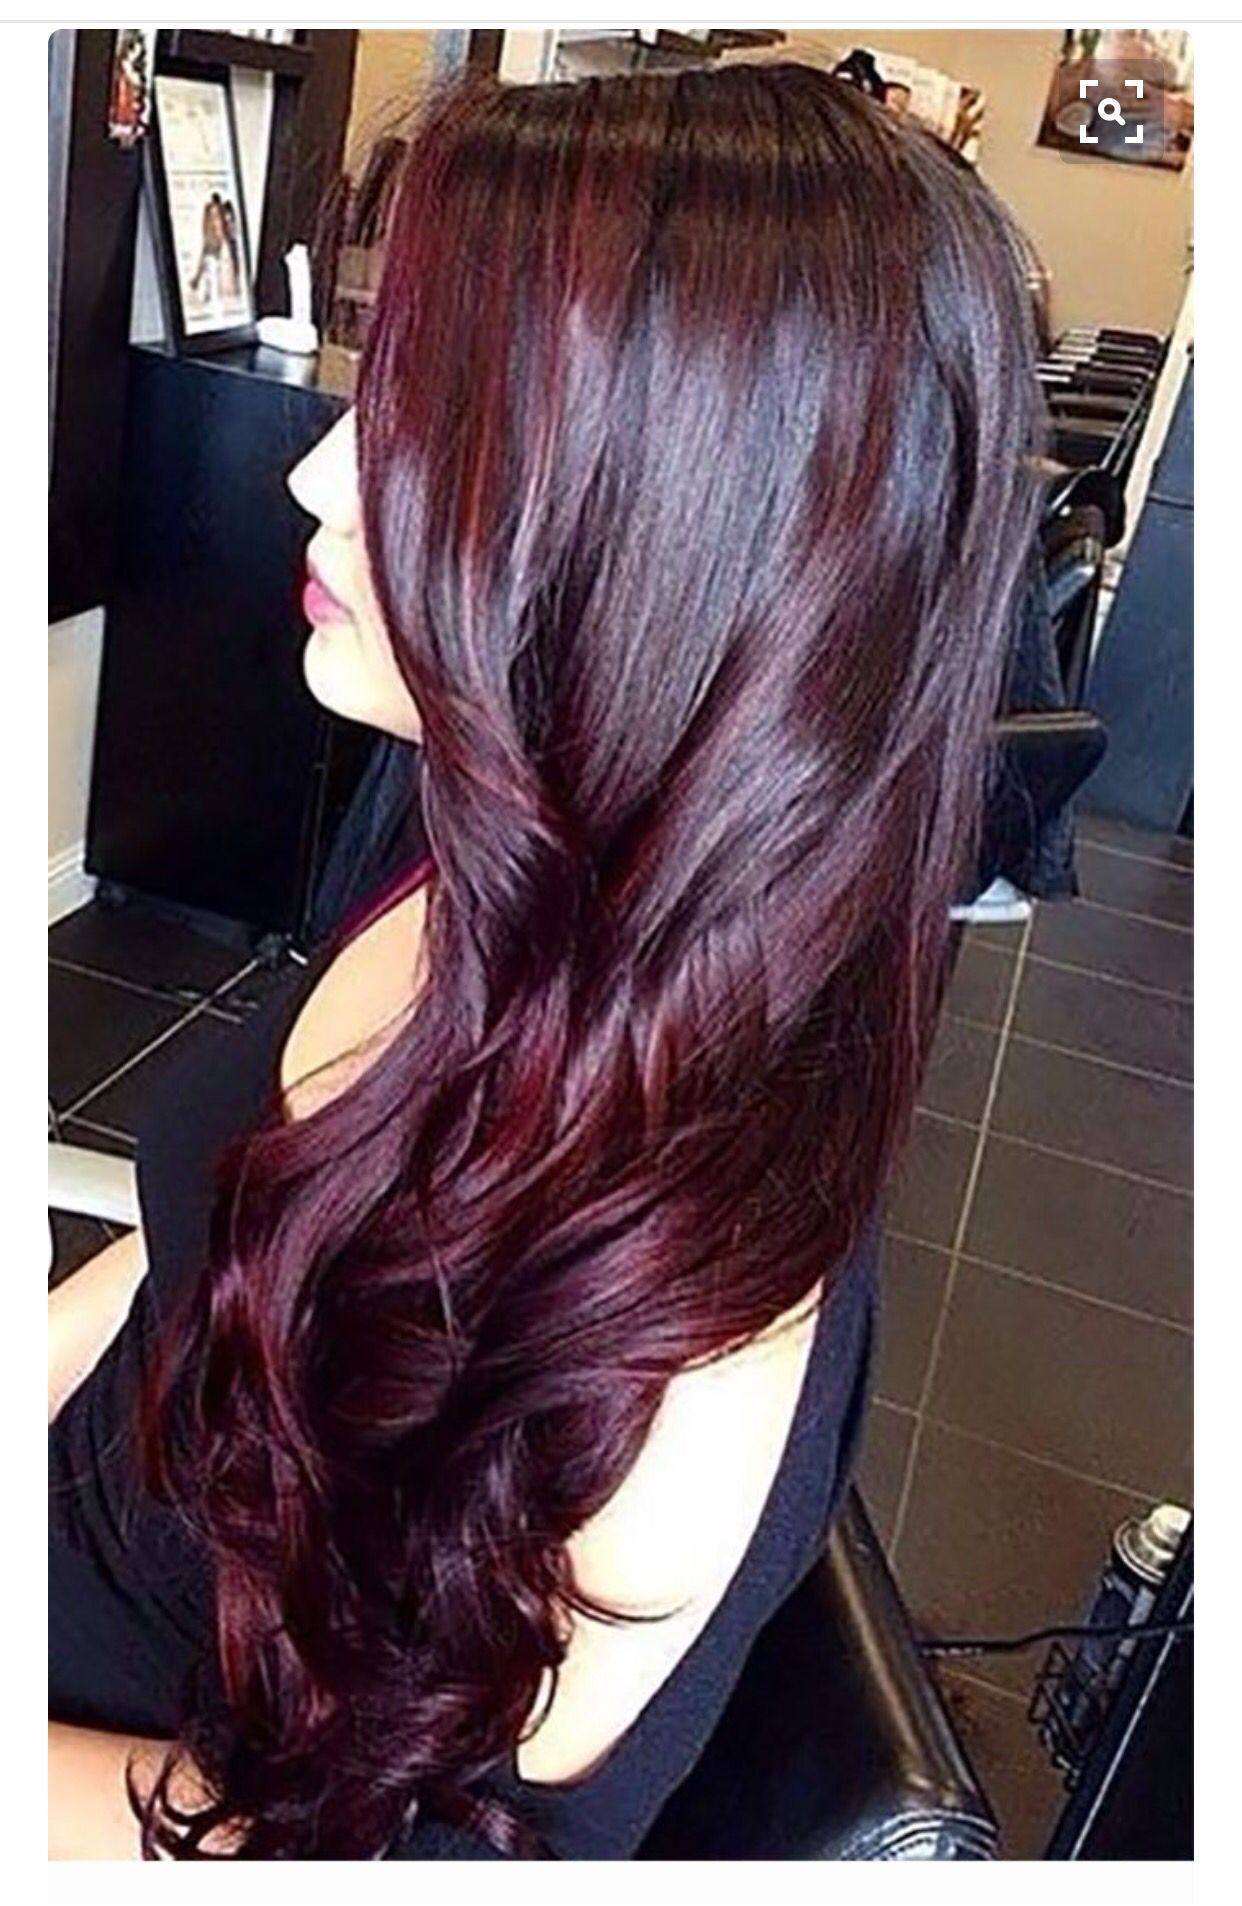 Pin By Maris Swid On Hair Nails Makeup Oh My Hair Styles Gorgeous Hair Color Hair Color Burgundy